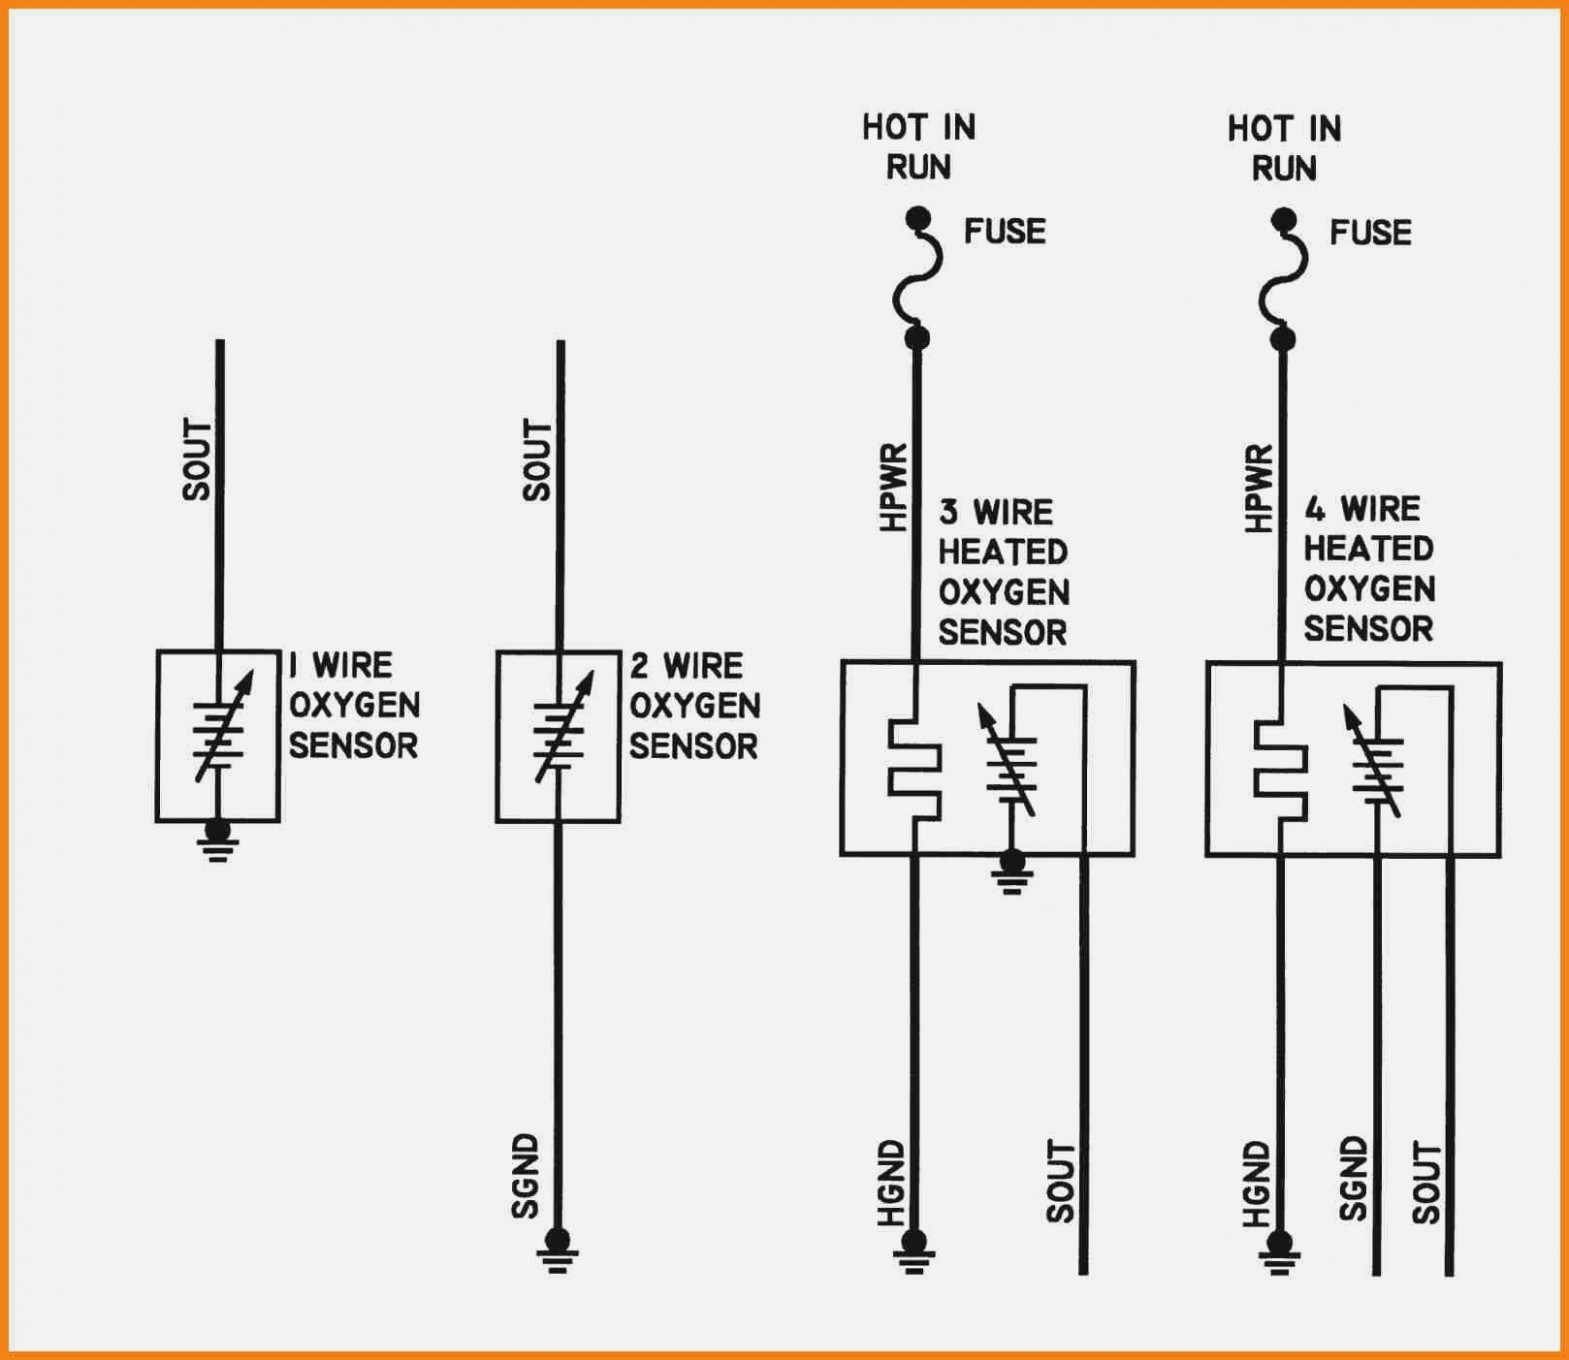 Gm Speed Sensor Wiring | Wiring Diagram - 2 Wire Speed Sensor Wiring Diagram